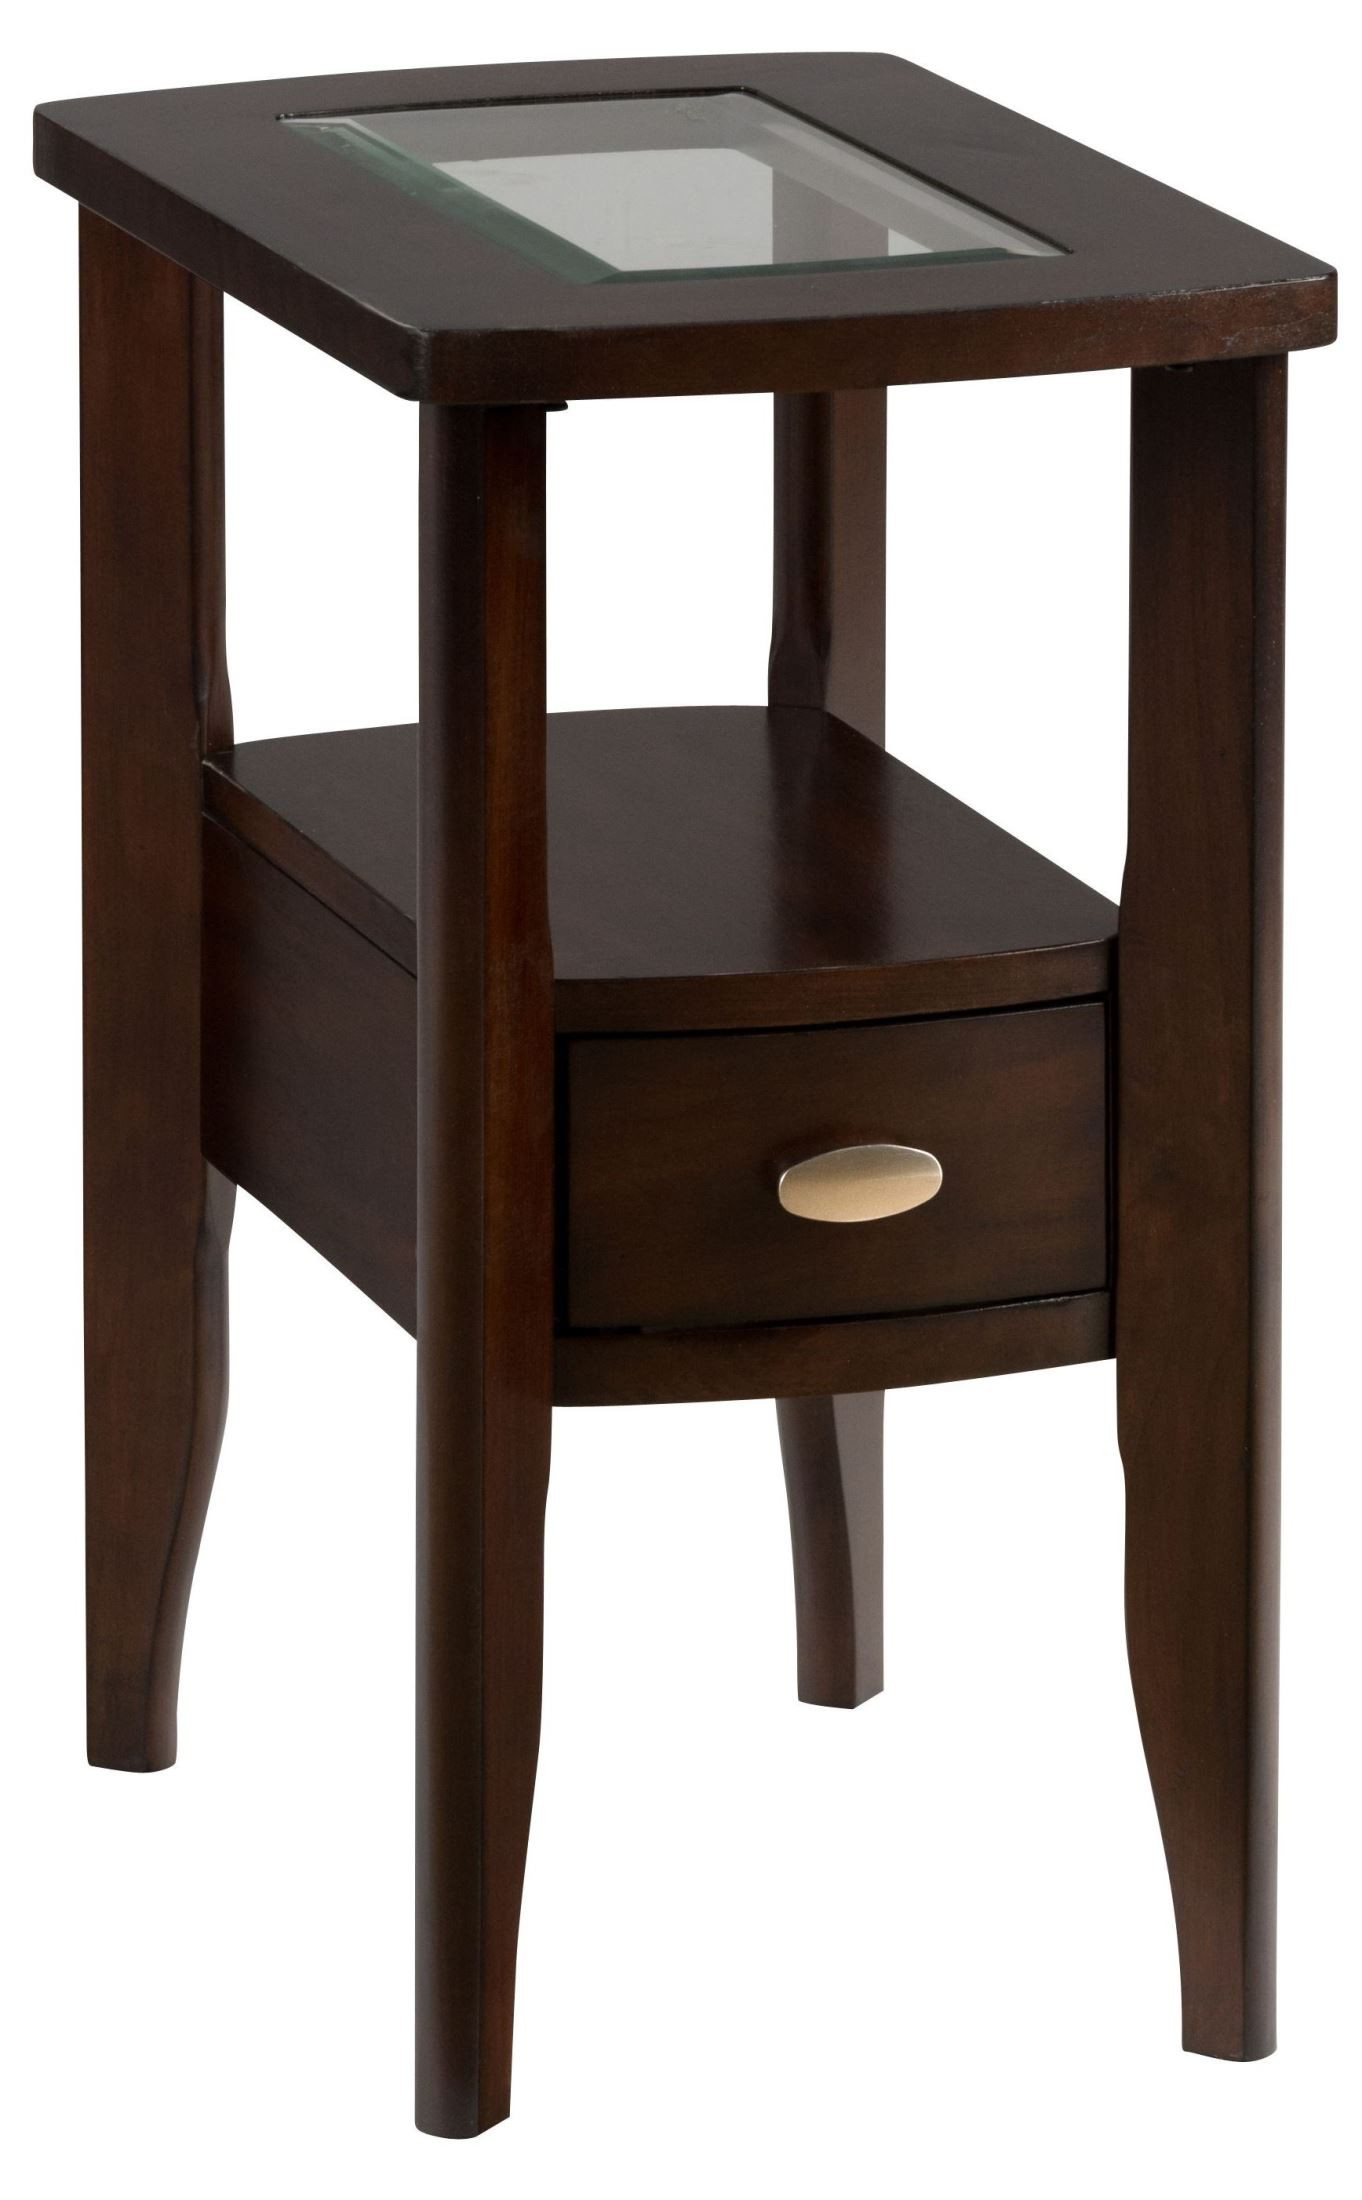 Montego merlot chairside table from jofran coleman furniture for Chairside table